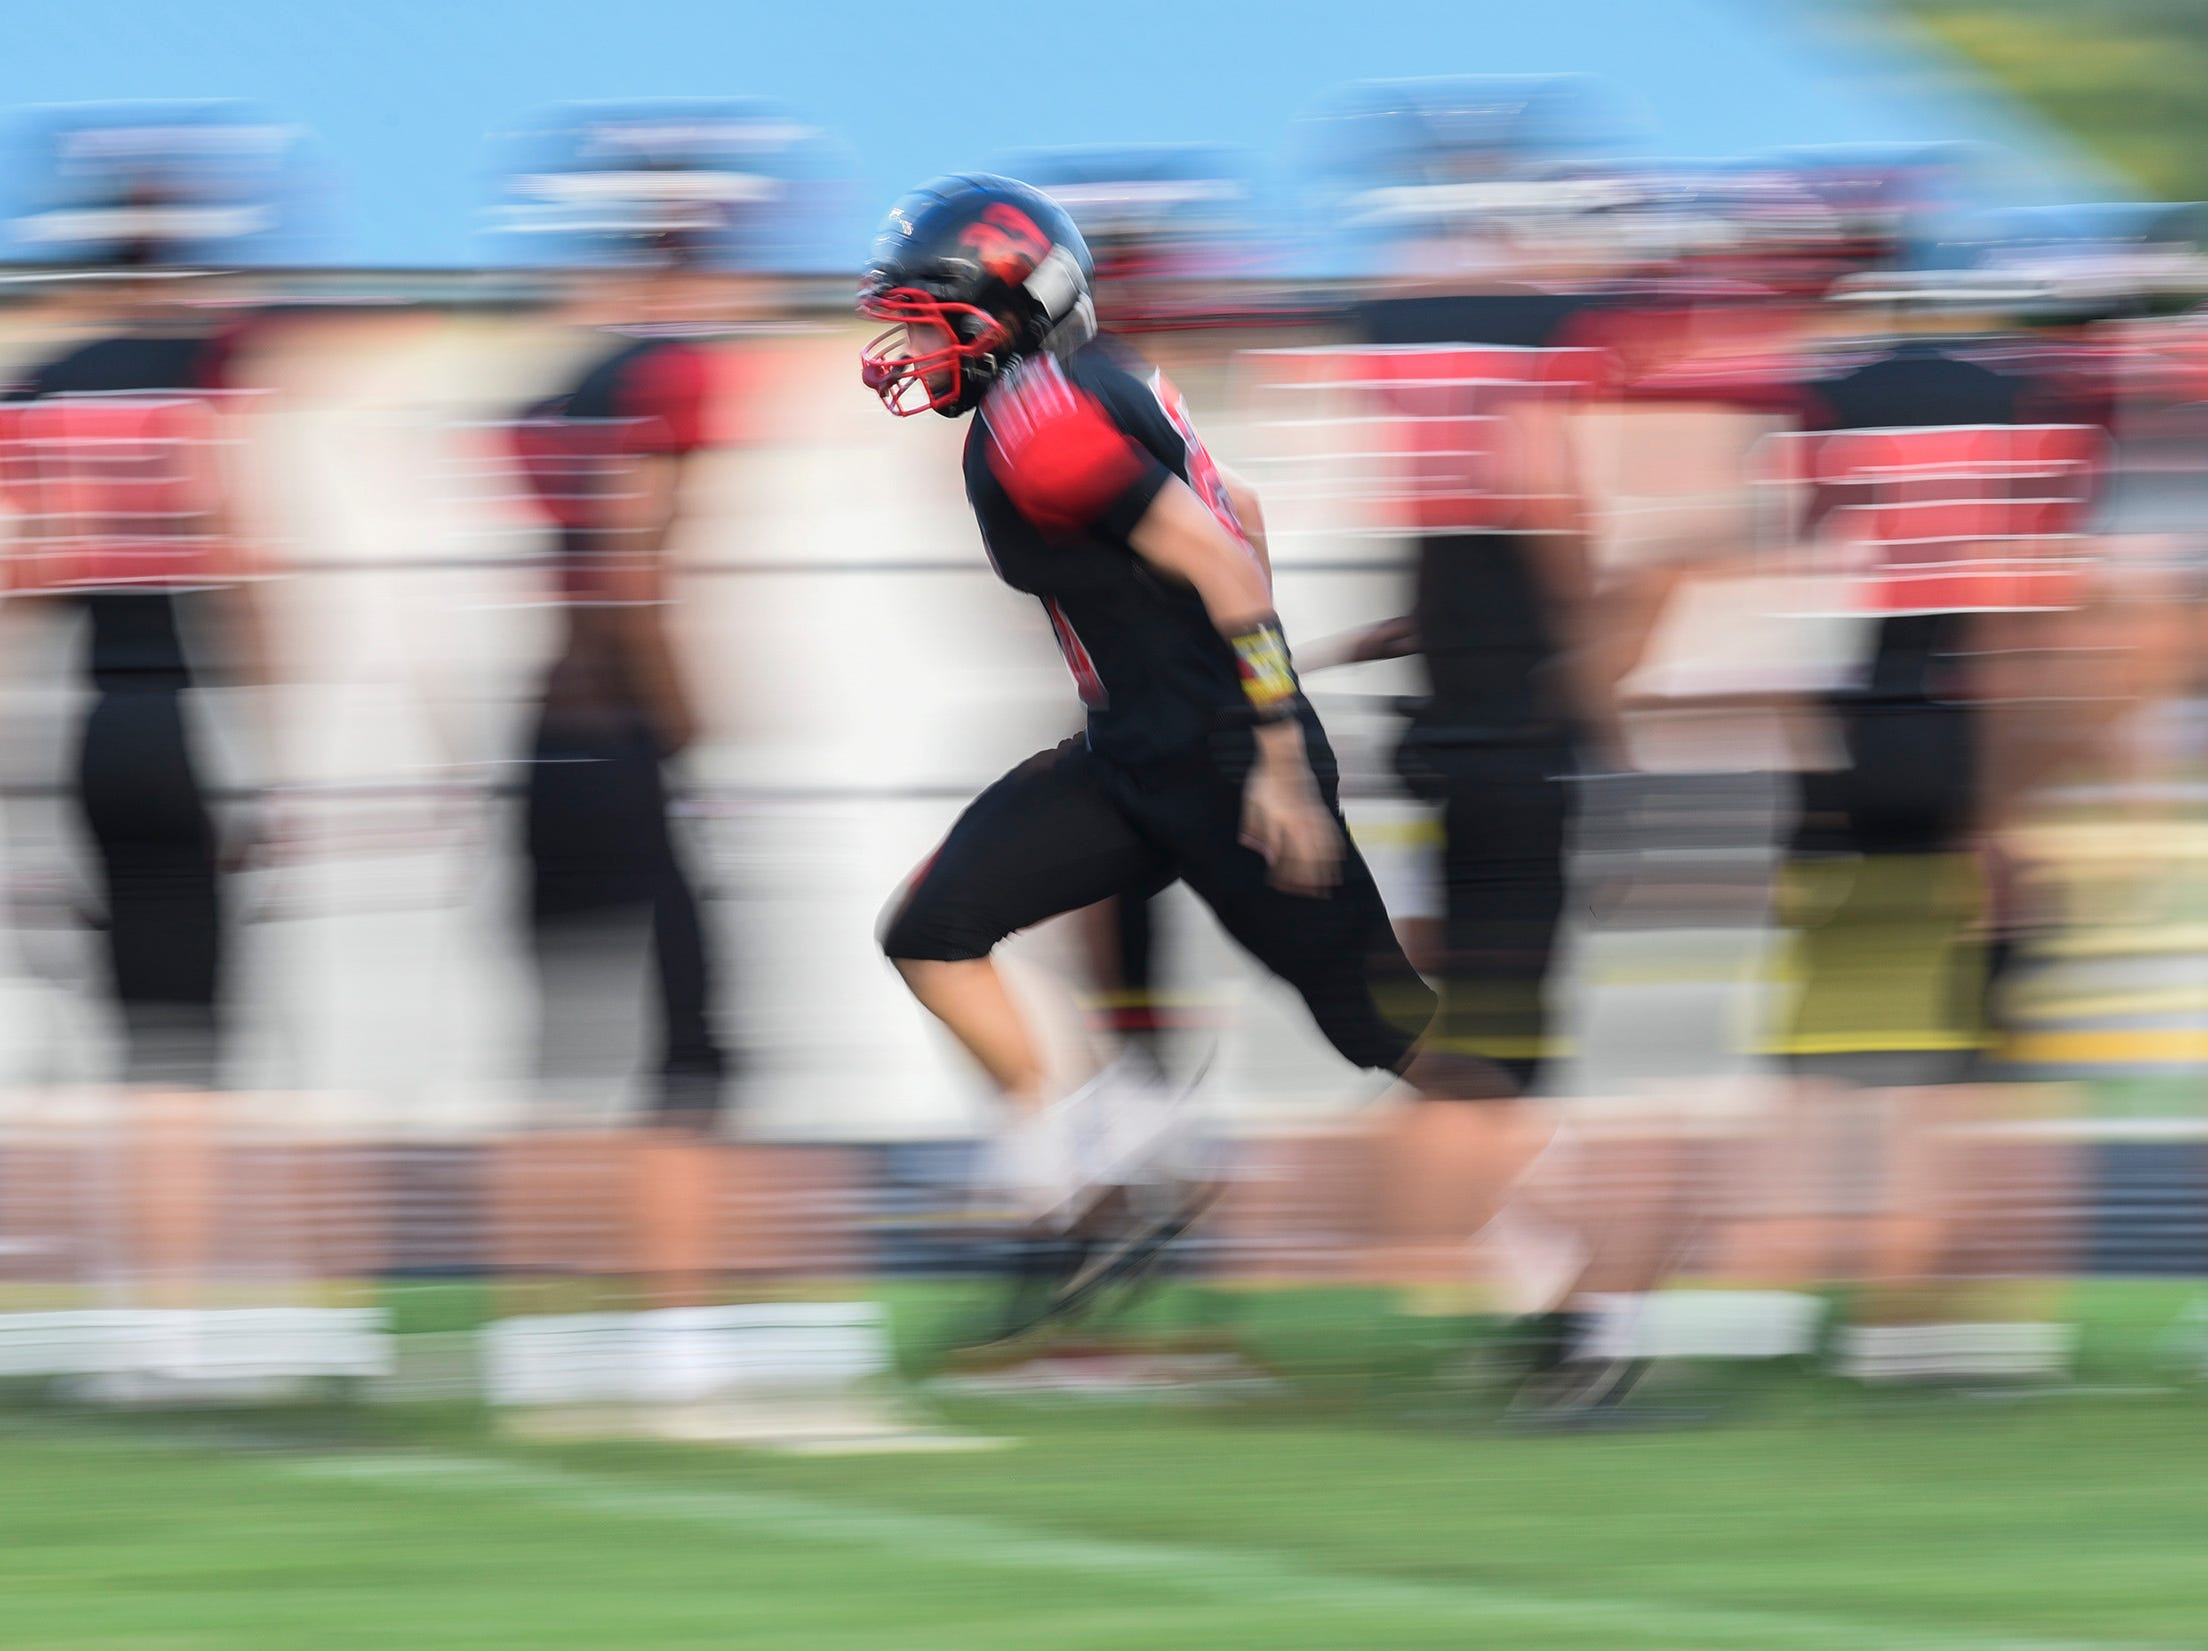 A ROCORI player runs onto the field during introductions Friday, Sept. 14, in Cold Spring.